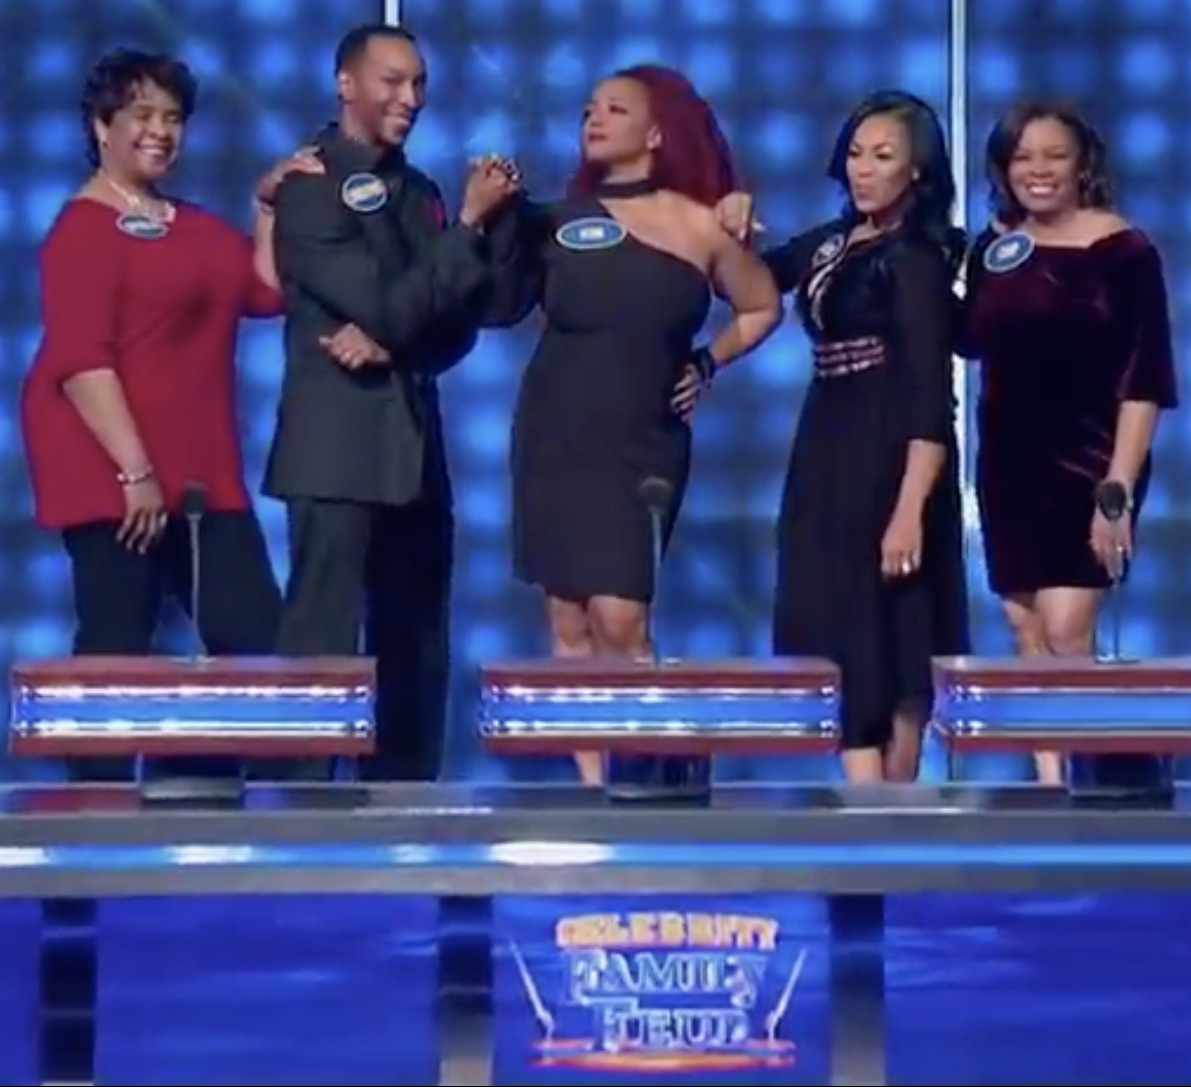 Kim Fields and family pose at the beginning of Celebrity Family Feud